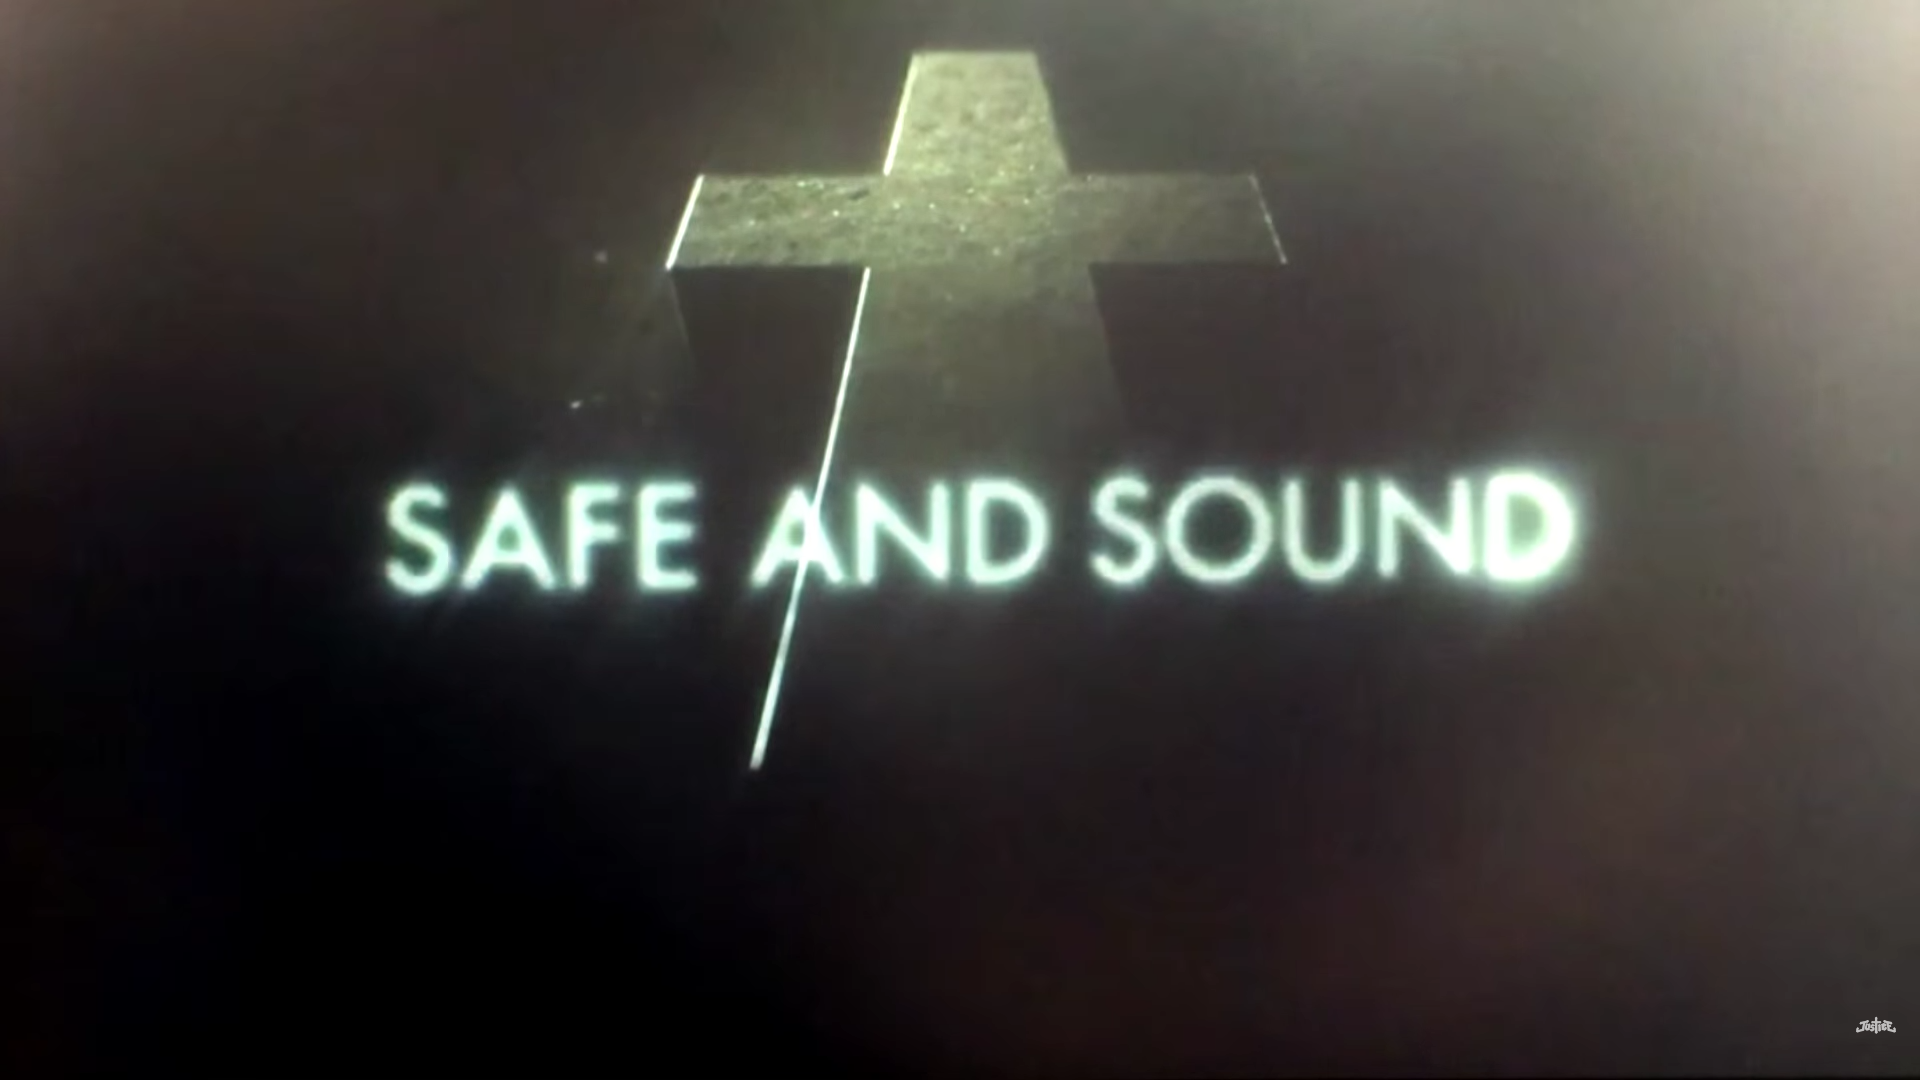 Justice new single for Safe and Sound. Photo by: Justice / YouTube